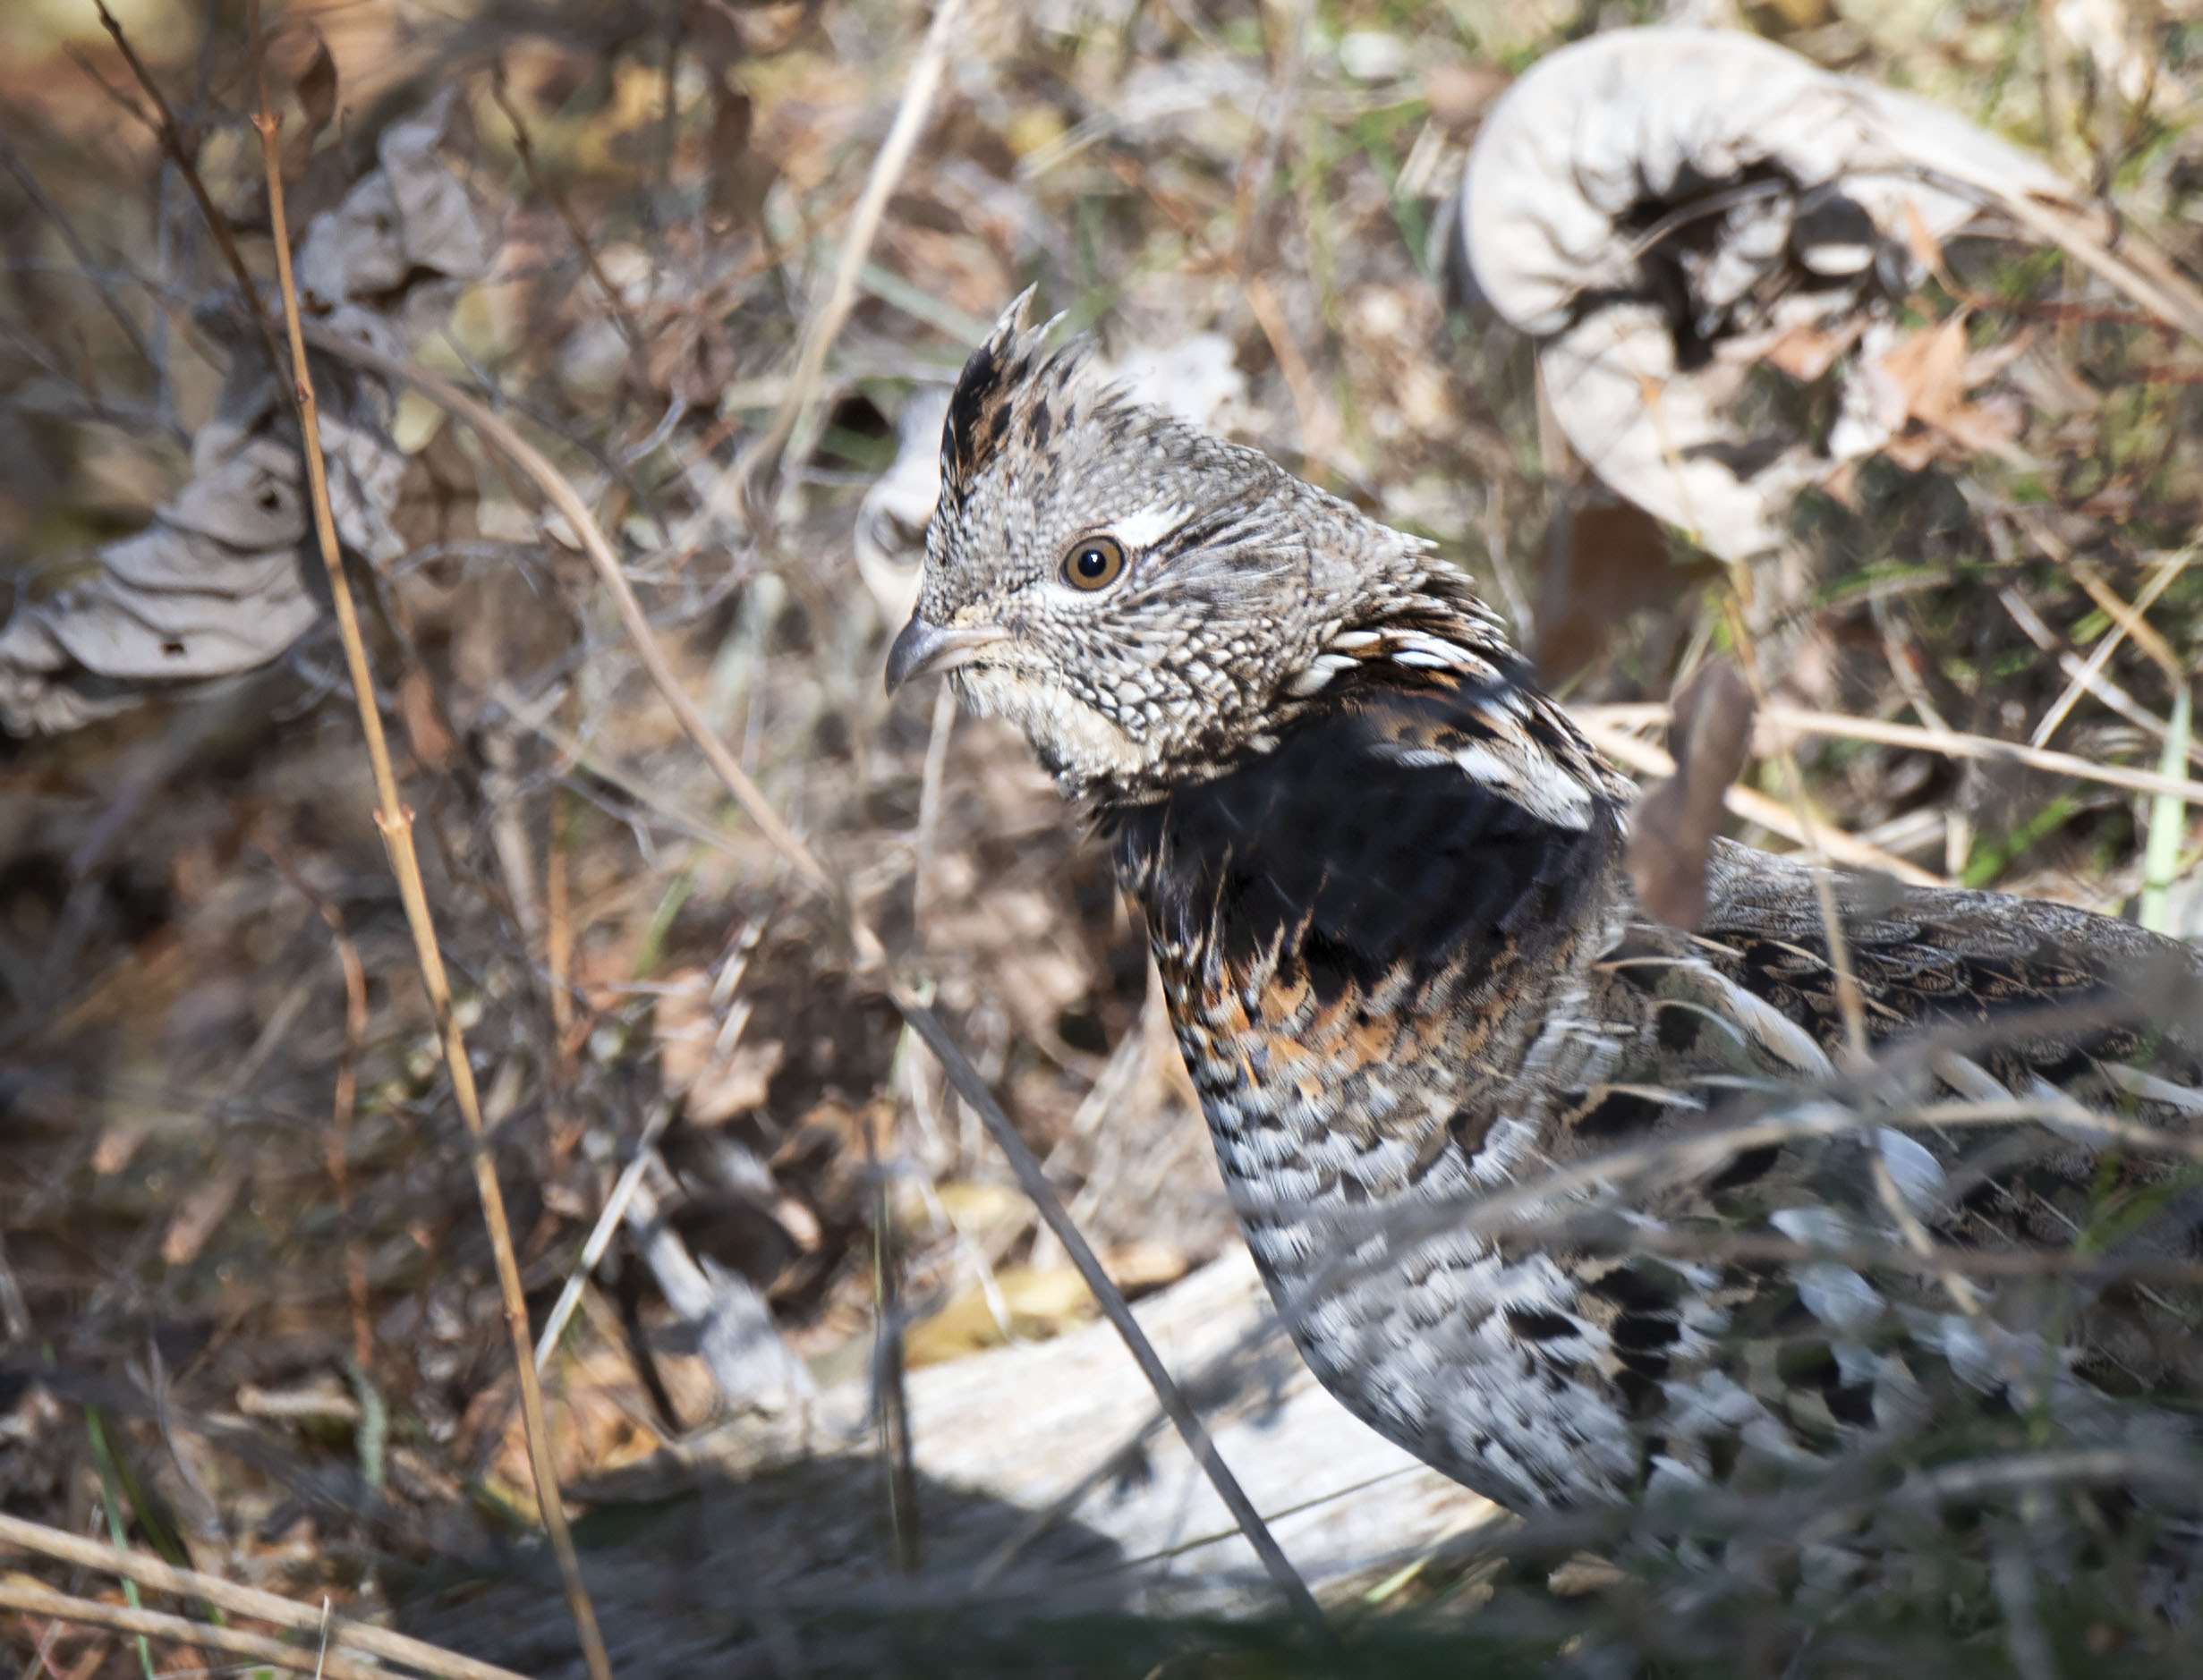 Male_ruffed_grouse_12094